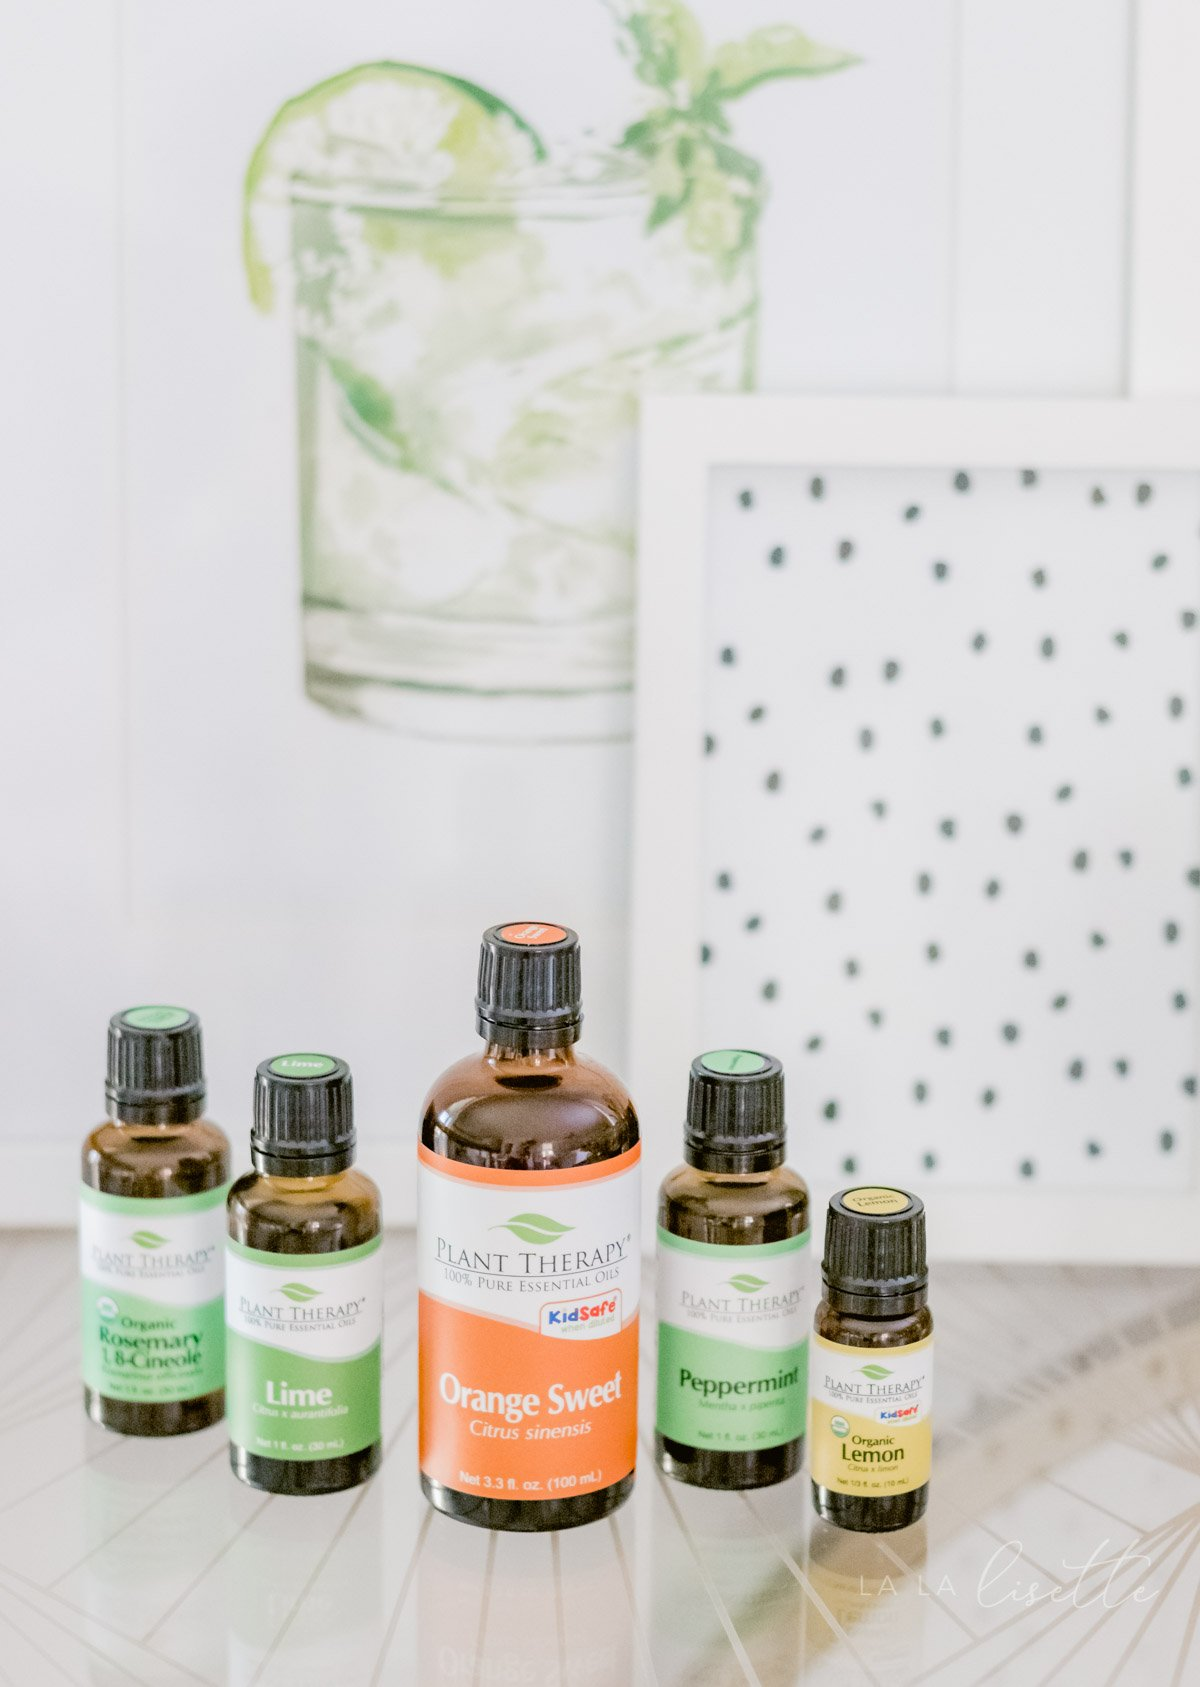 Plant Therapy essential oils | winter skincare essentials